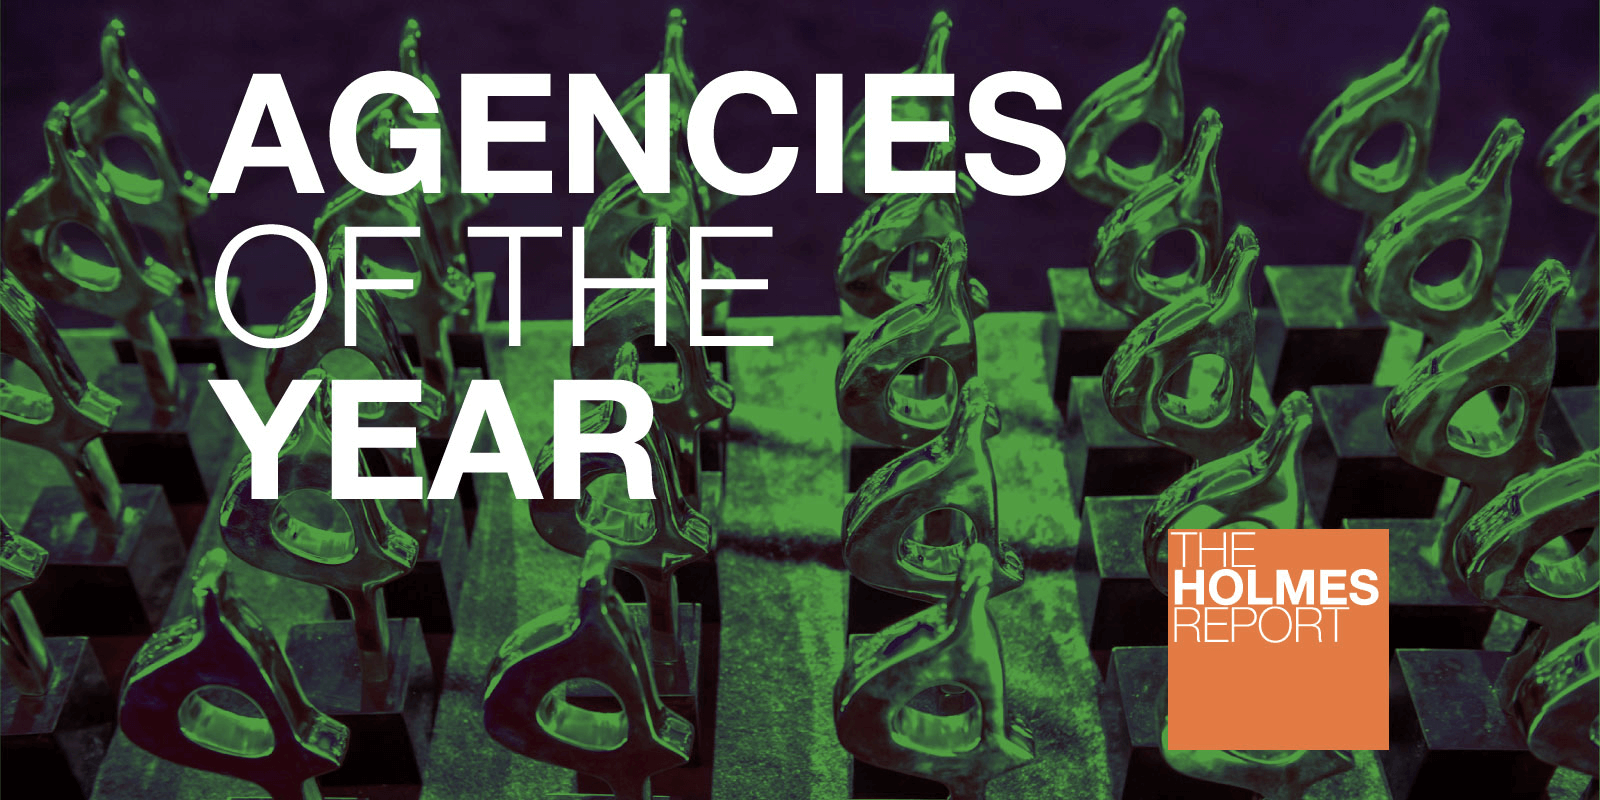 Taft Named as Finalist for an Agency of the Year